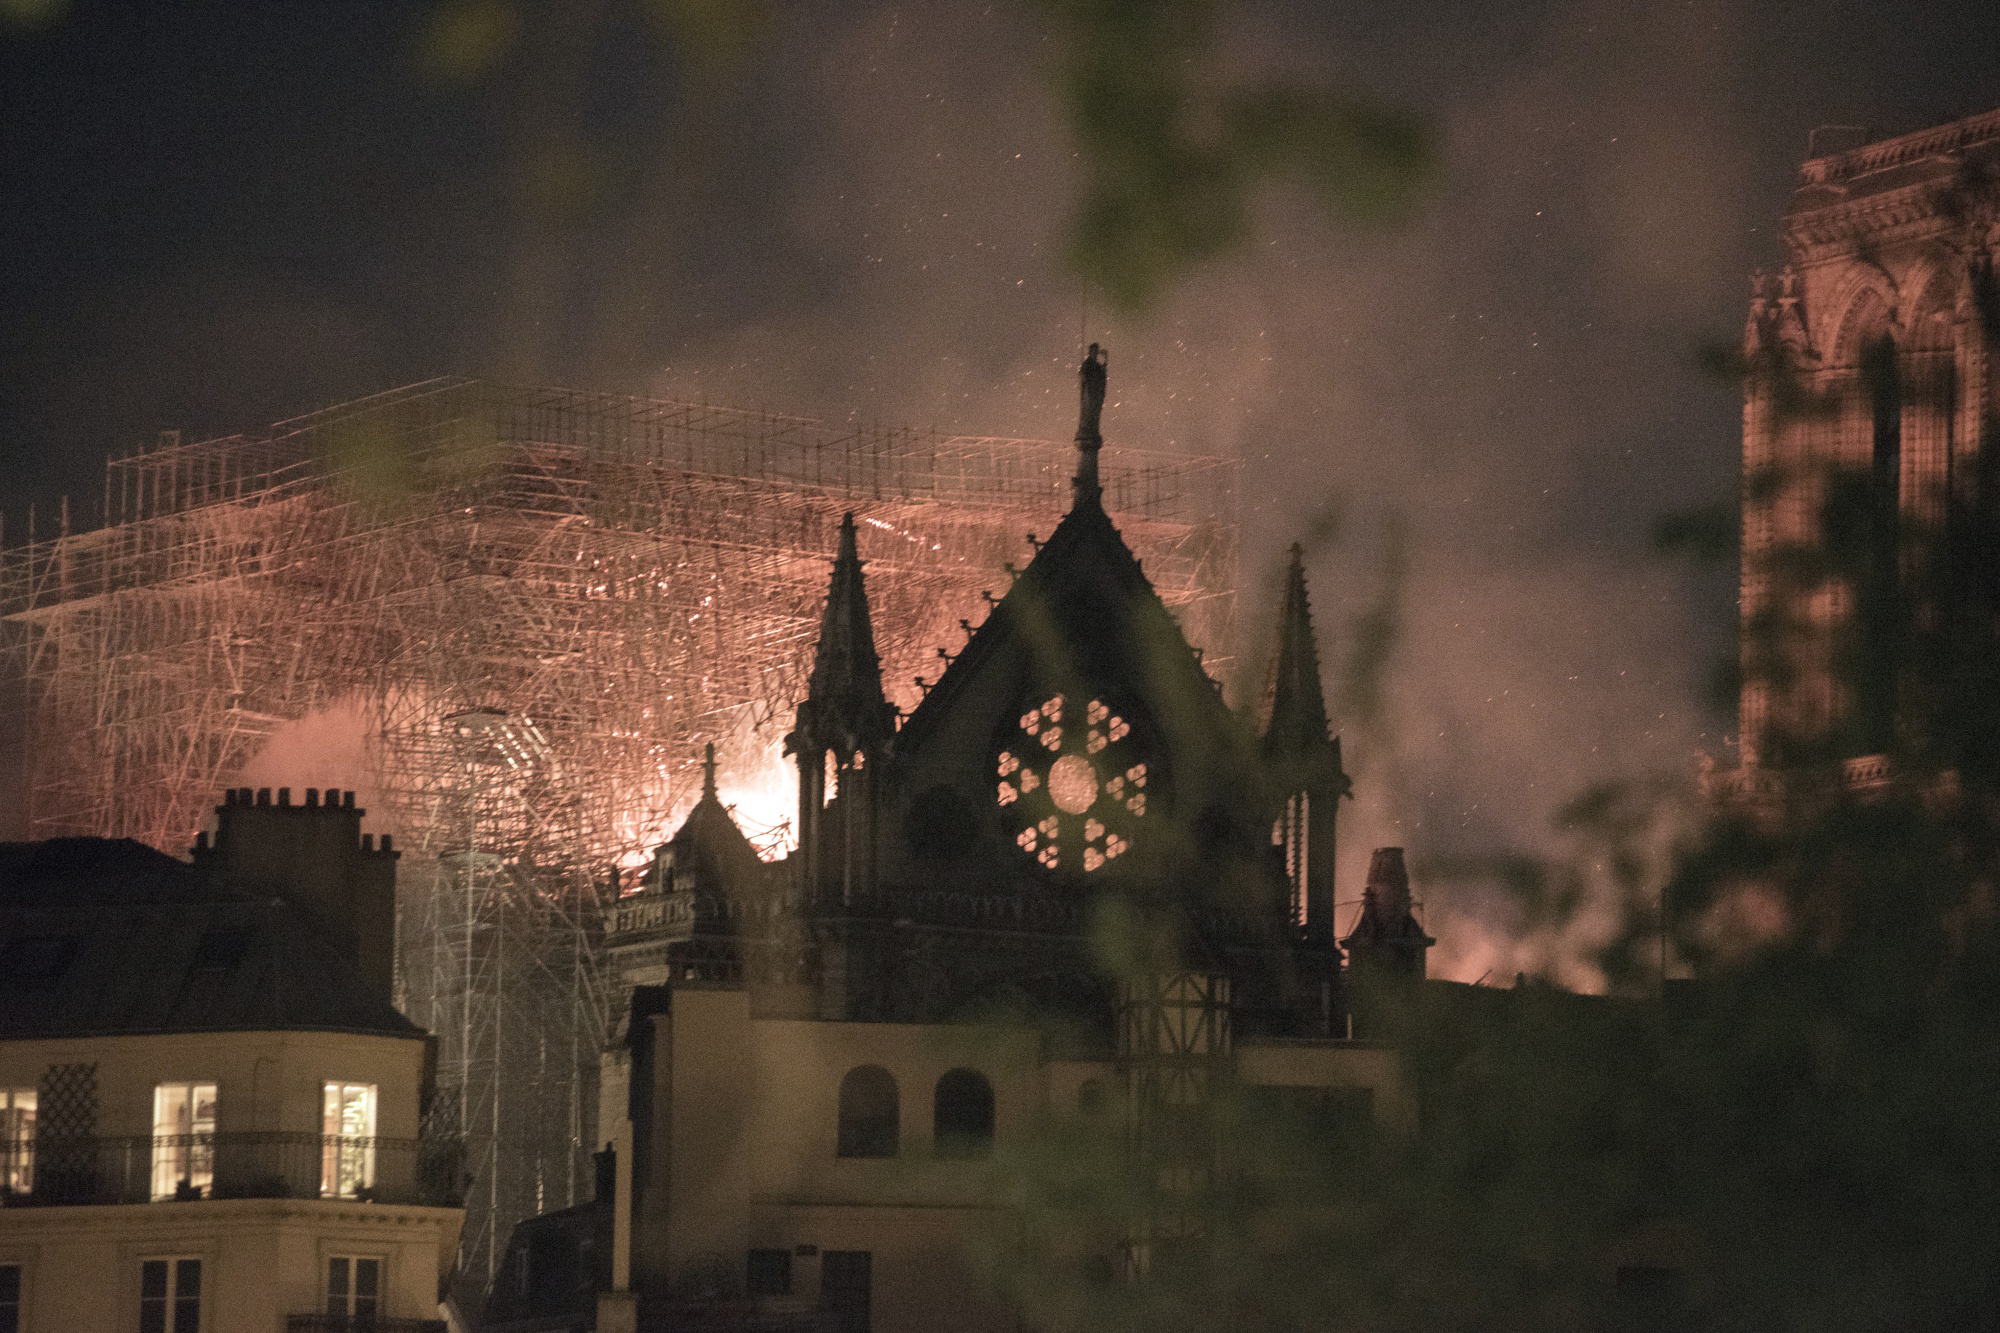 Macron presides over rare unity as France grieves Notre Dame